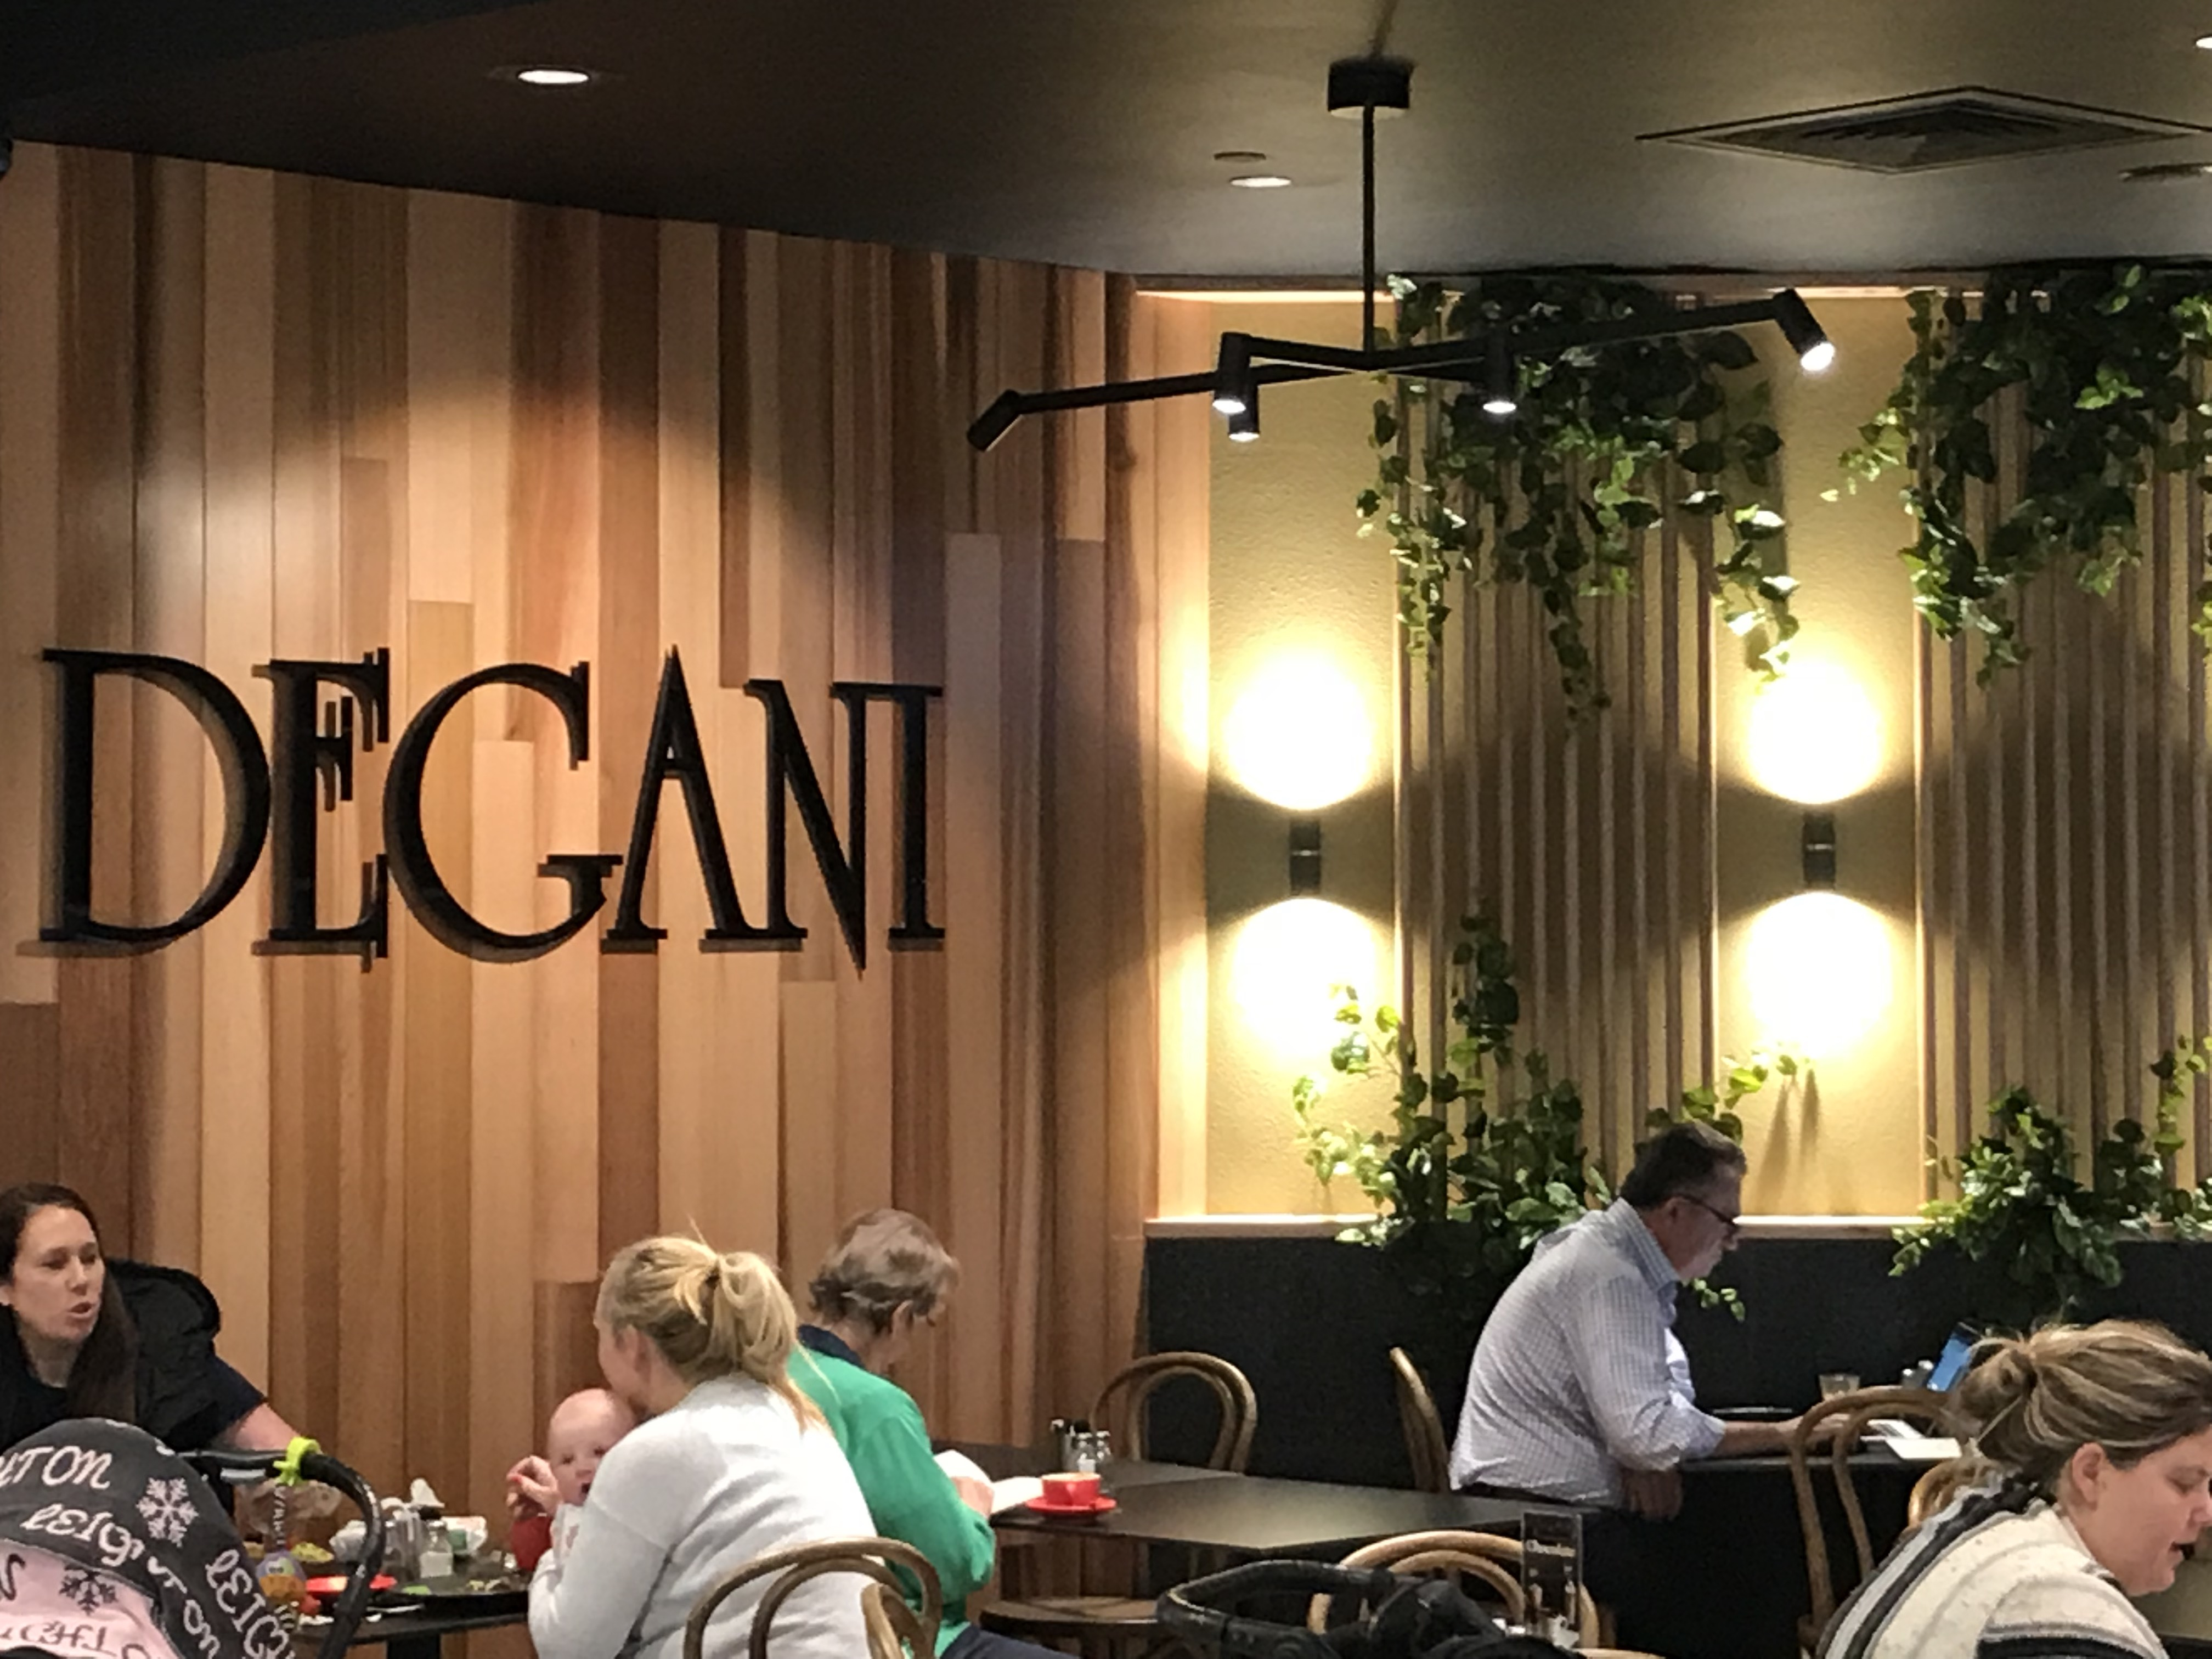 New Degani cafe Degani in Port Stephens - Salamander Bay Square Shopping Centre